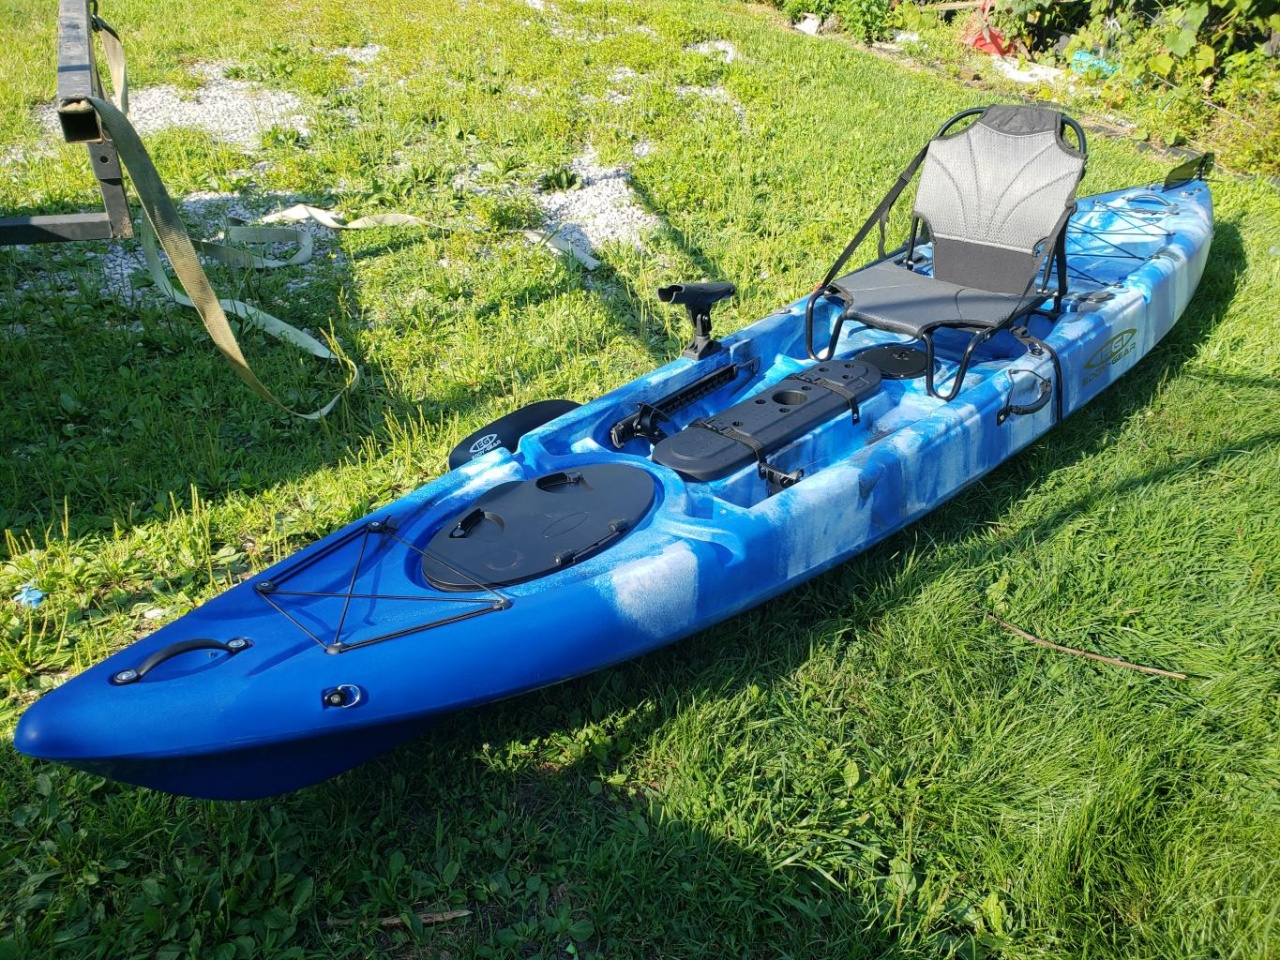 Game changer kayak?-20180725_175214_1532899394224-jpg